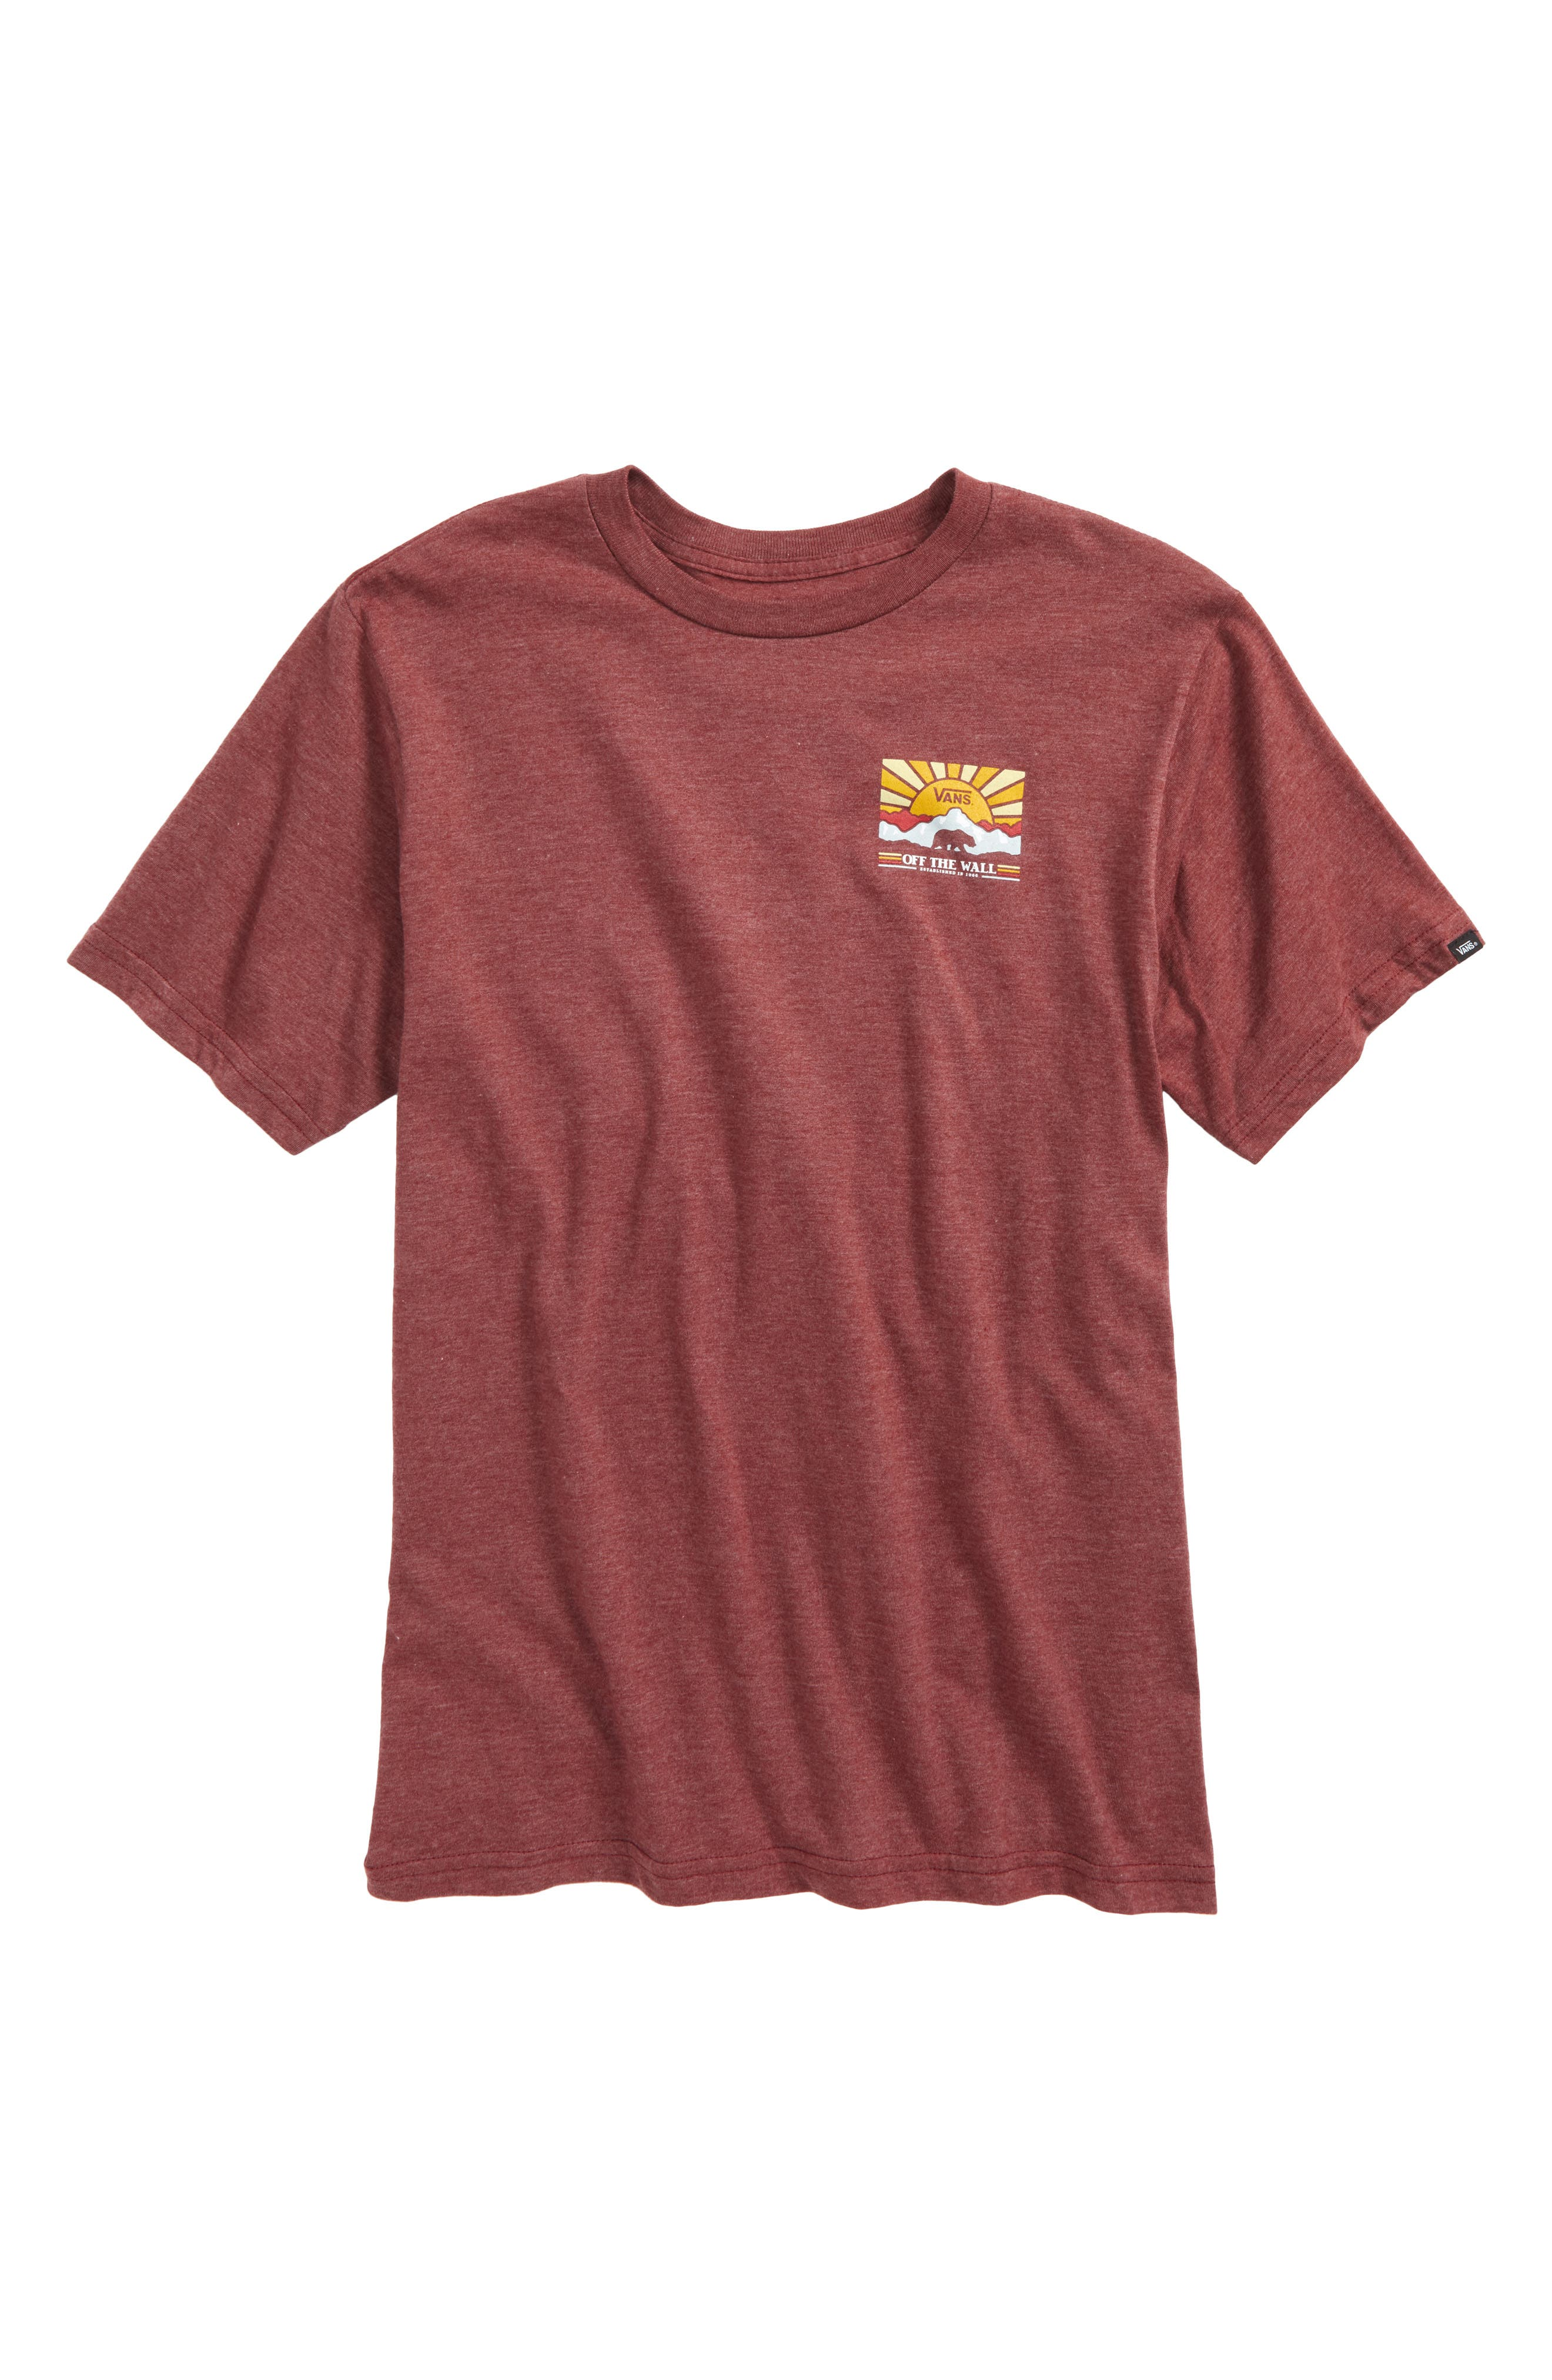 Grizzly Mountain Graphic T-Shirt,                             Main thumbnail 1, color,                             Burgundy Heather